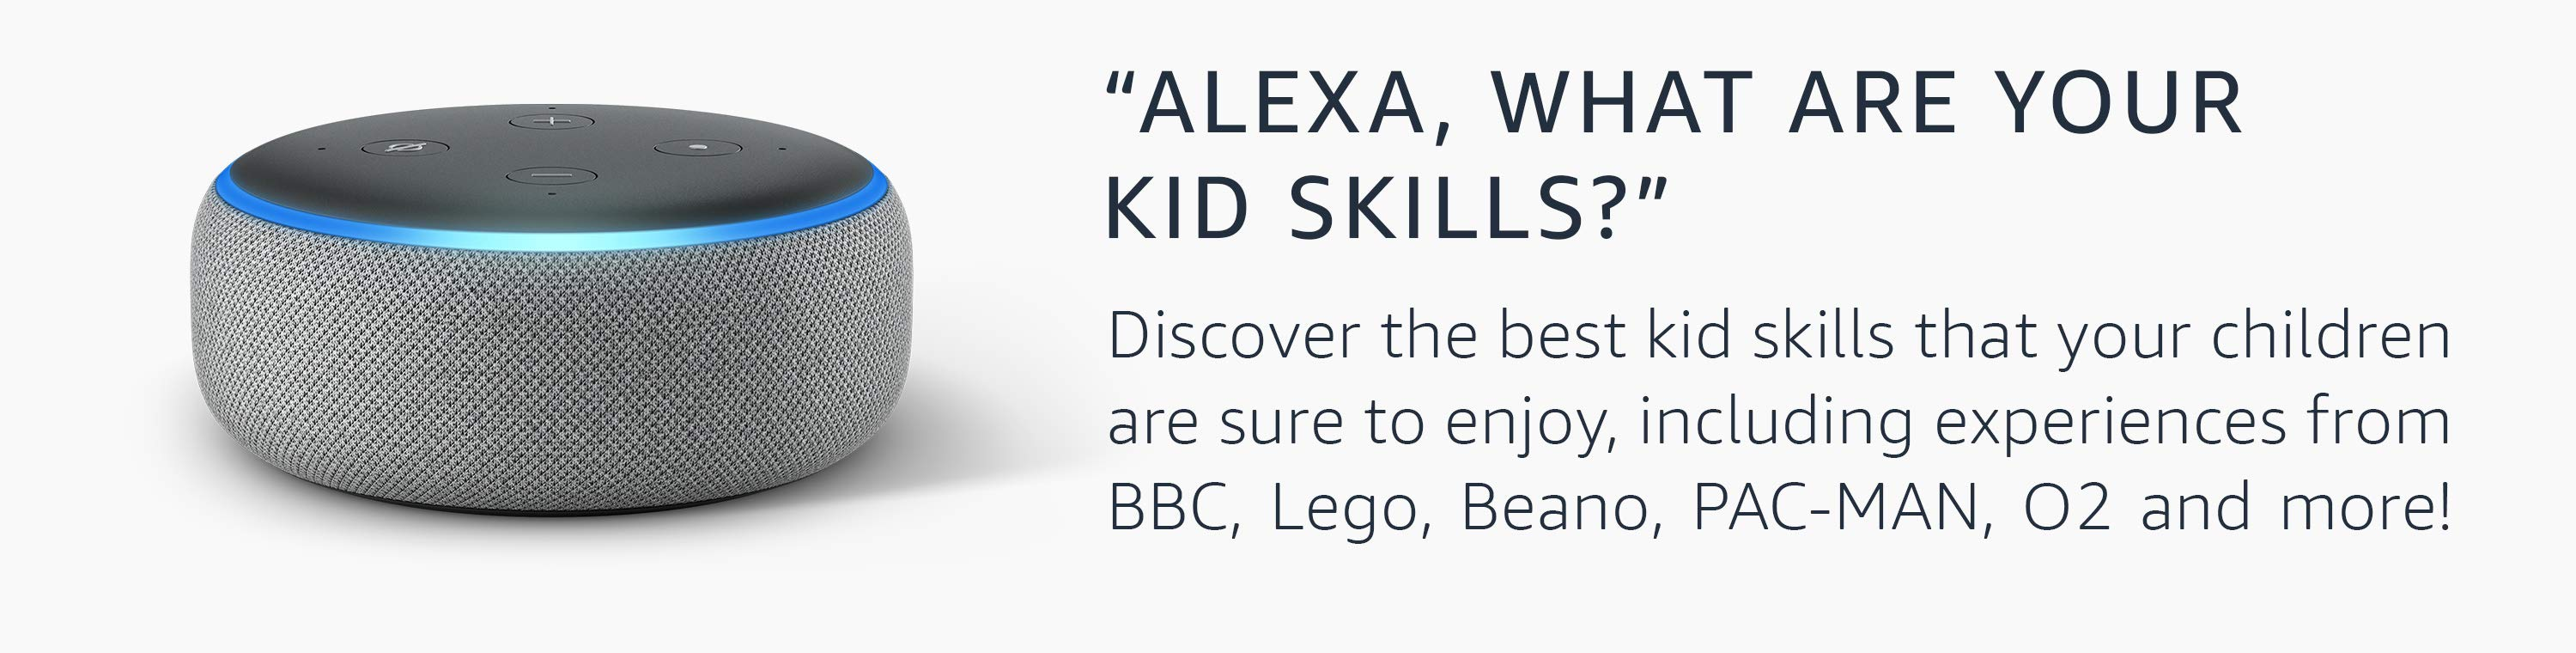 Alexa, what are your Kid Skills?